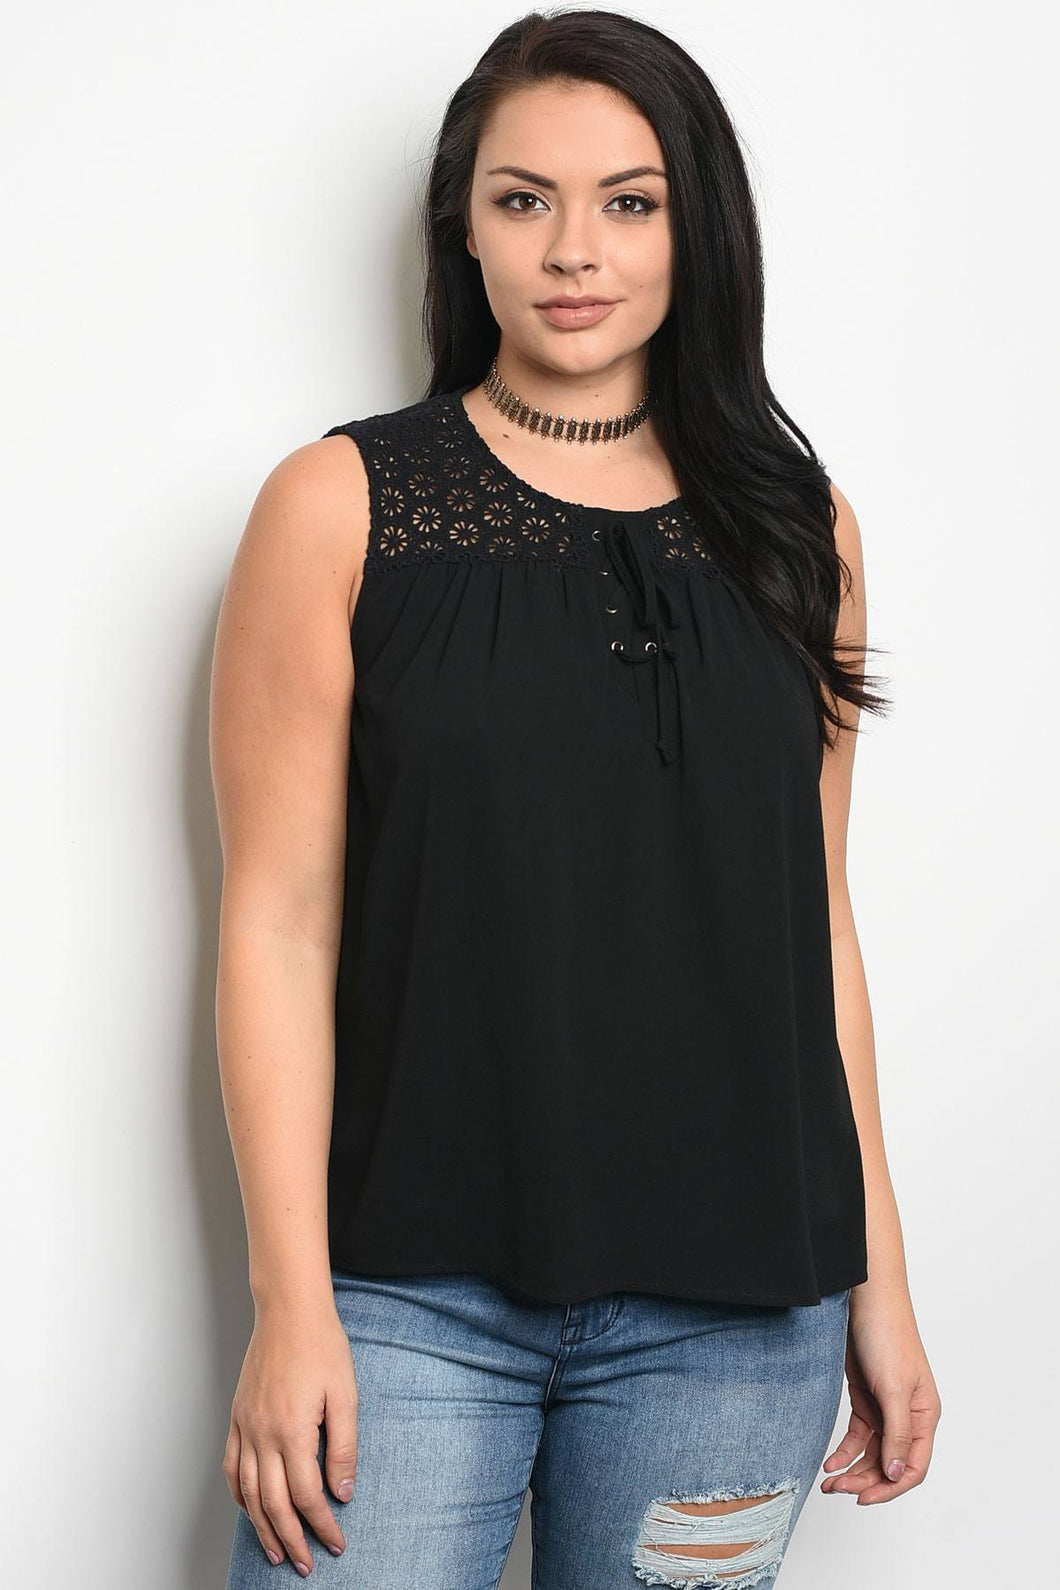 Plus size sleeveless top that features a scoop neckline and lace details